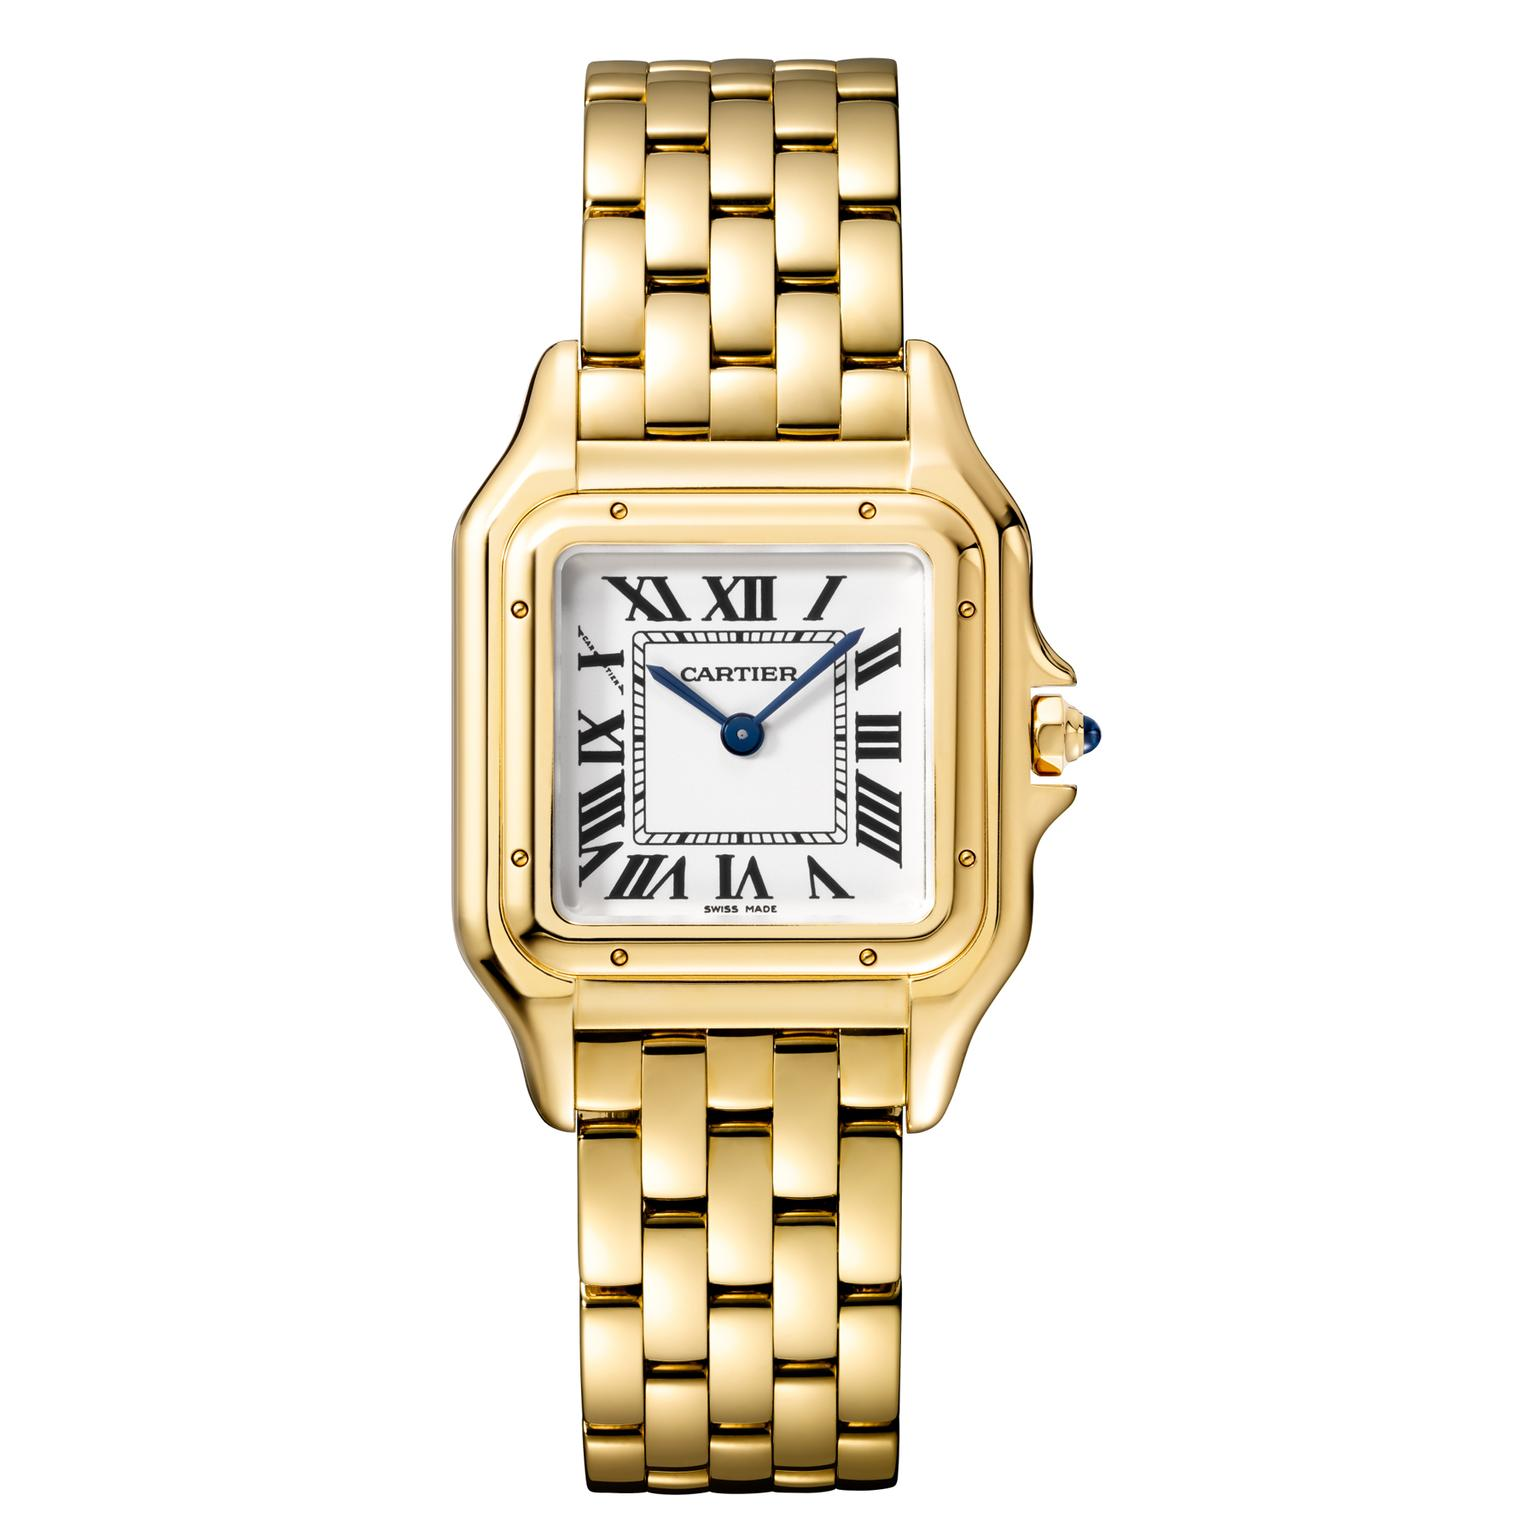 Medium size Panthère de Cartier watch in yellow gold